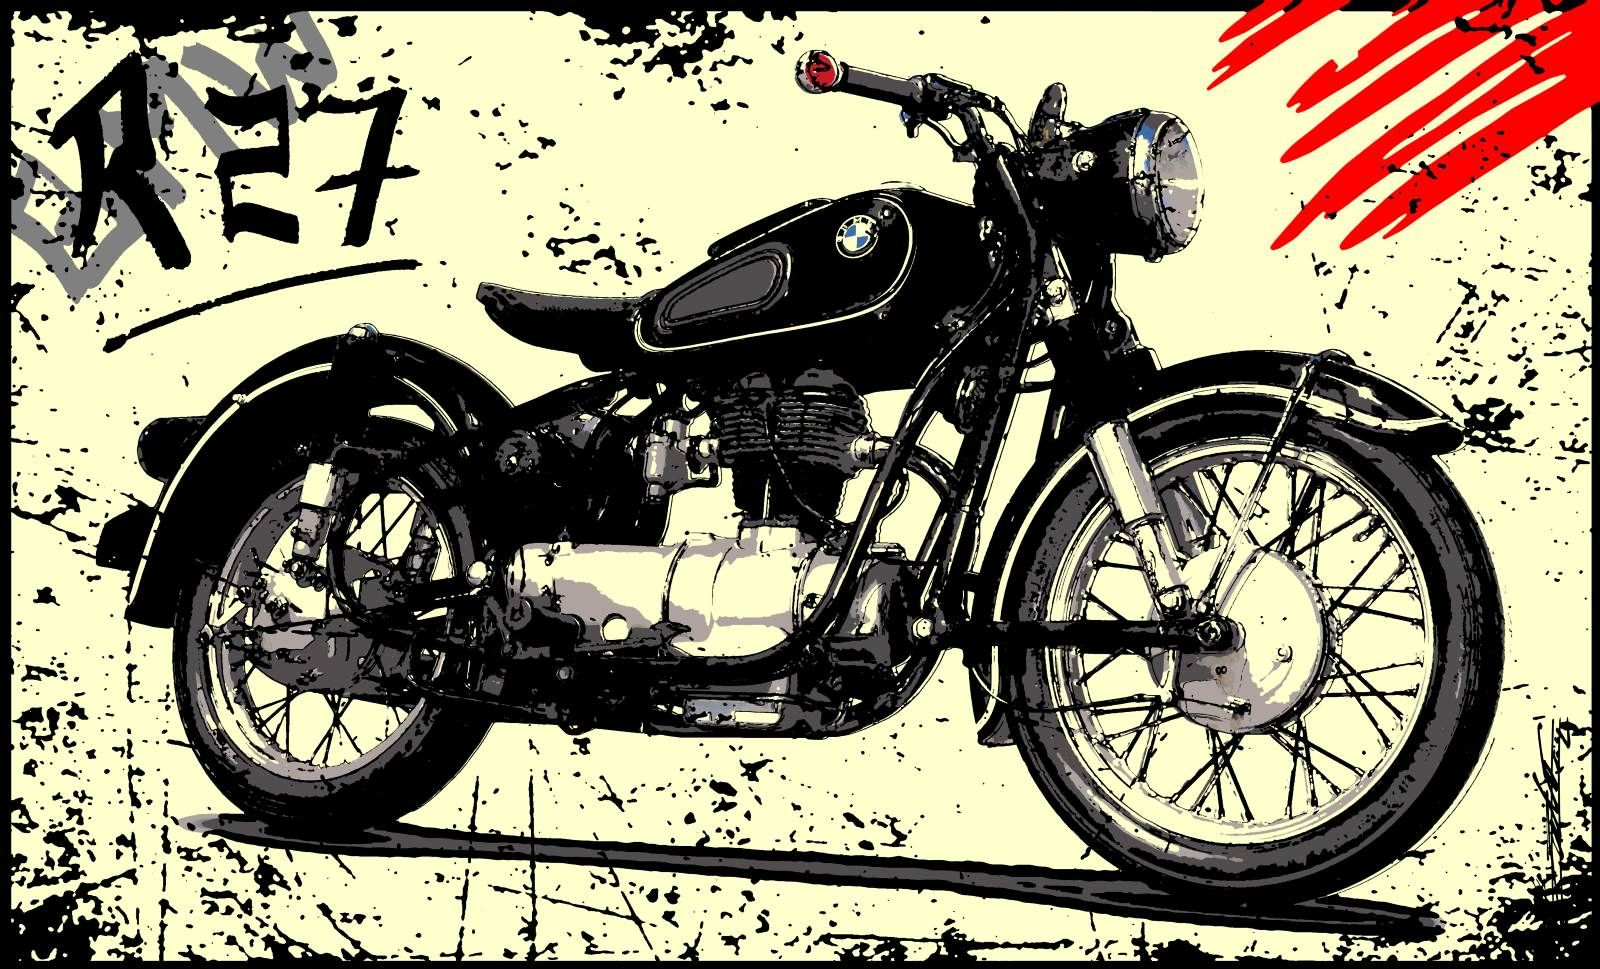 tableau moto ancienne peinture bmw r27 noir blanc dessin acrylique moderne contemporain. Black Bedroom Furniture Sets. Home Design Ideas